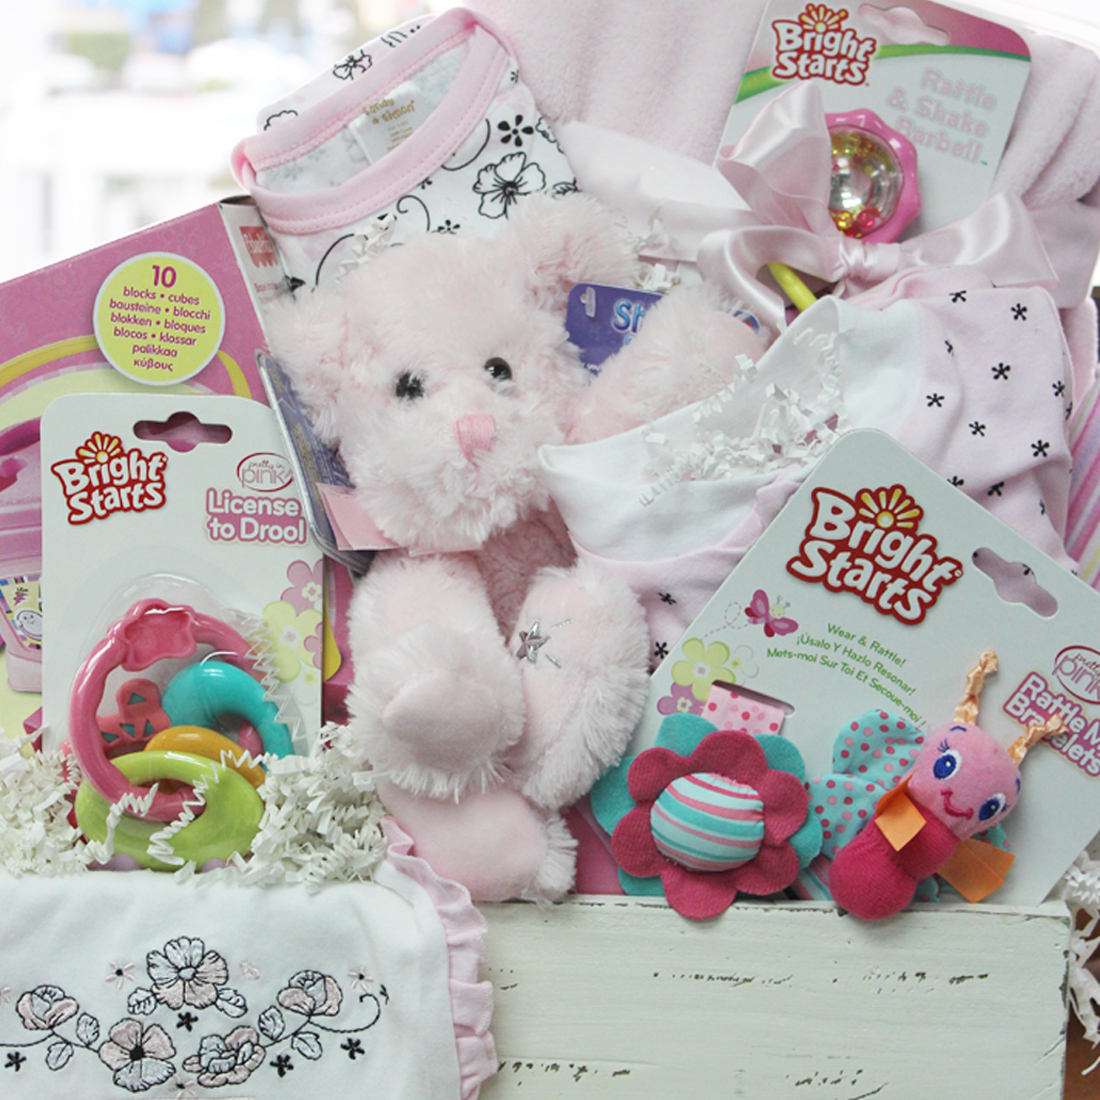 Baby Gift Baskets Vancouver : Sugar spice and everything nice vancouvergiftbaskets